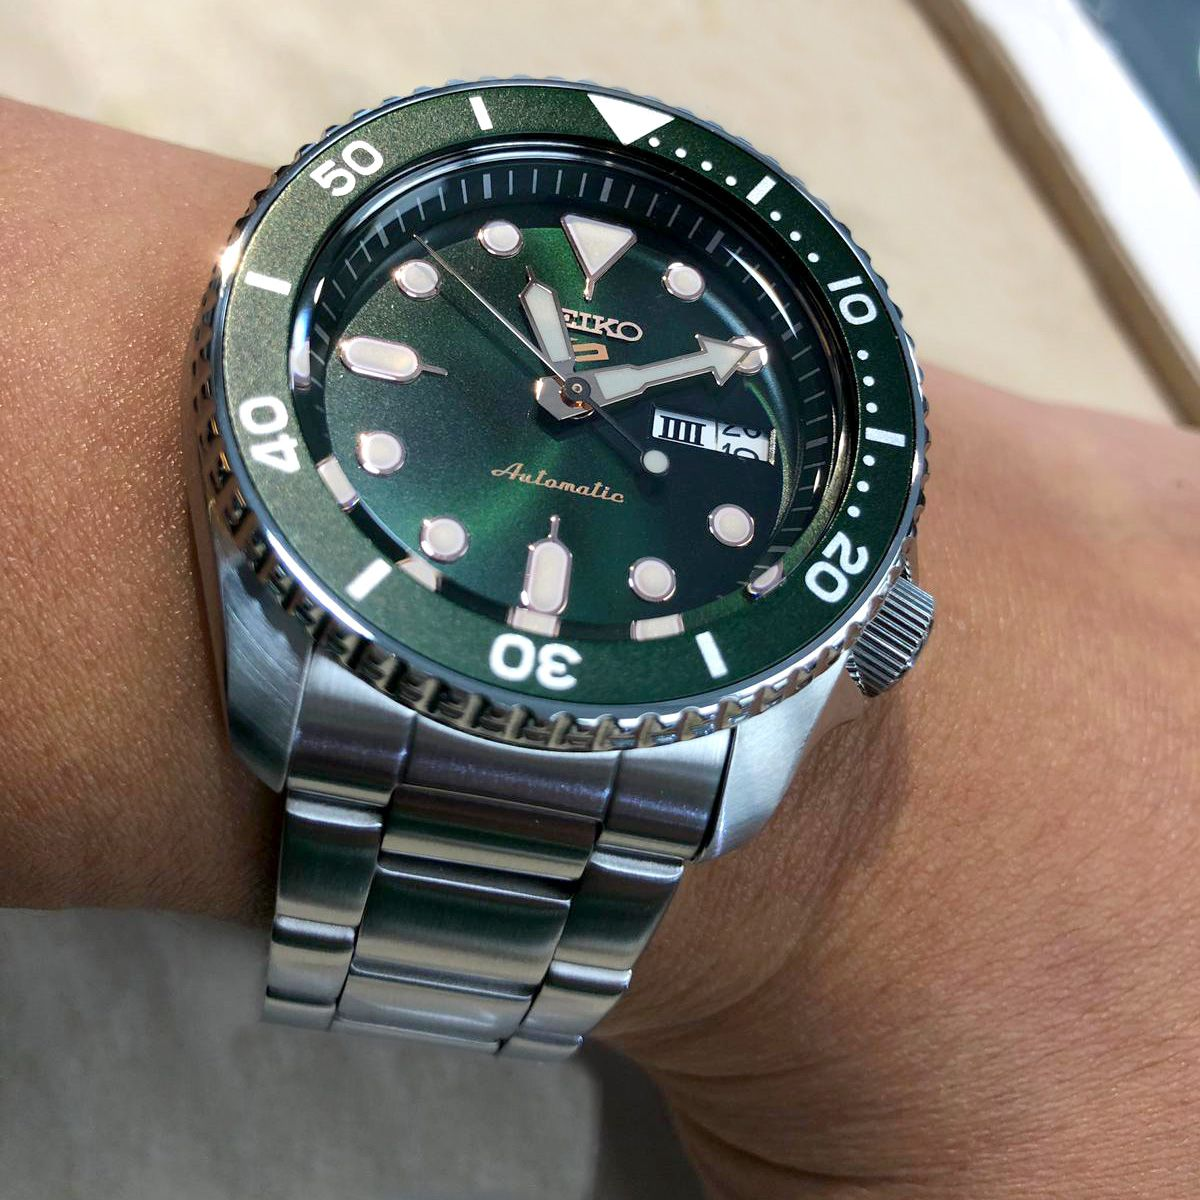 Rebirth of cool The New Seiko 5 Sports line in 2020